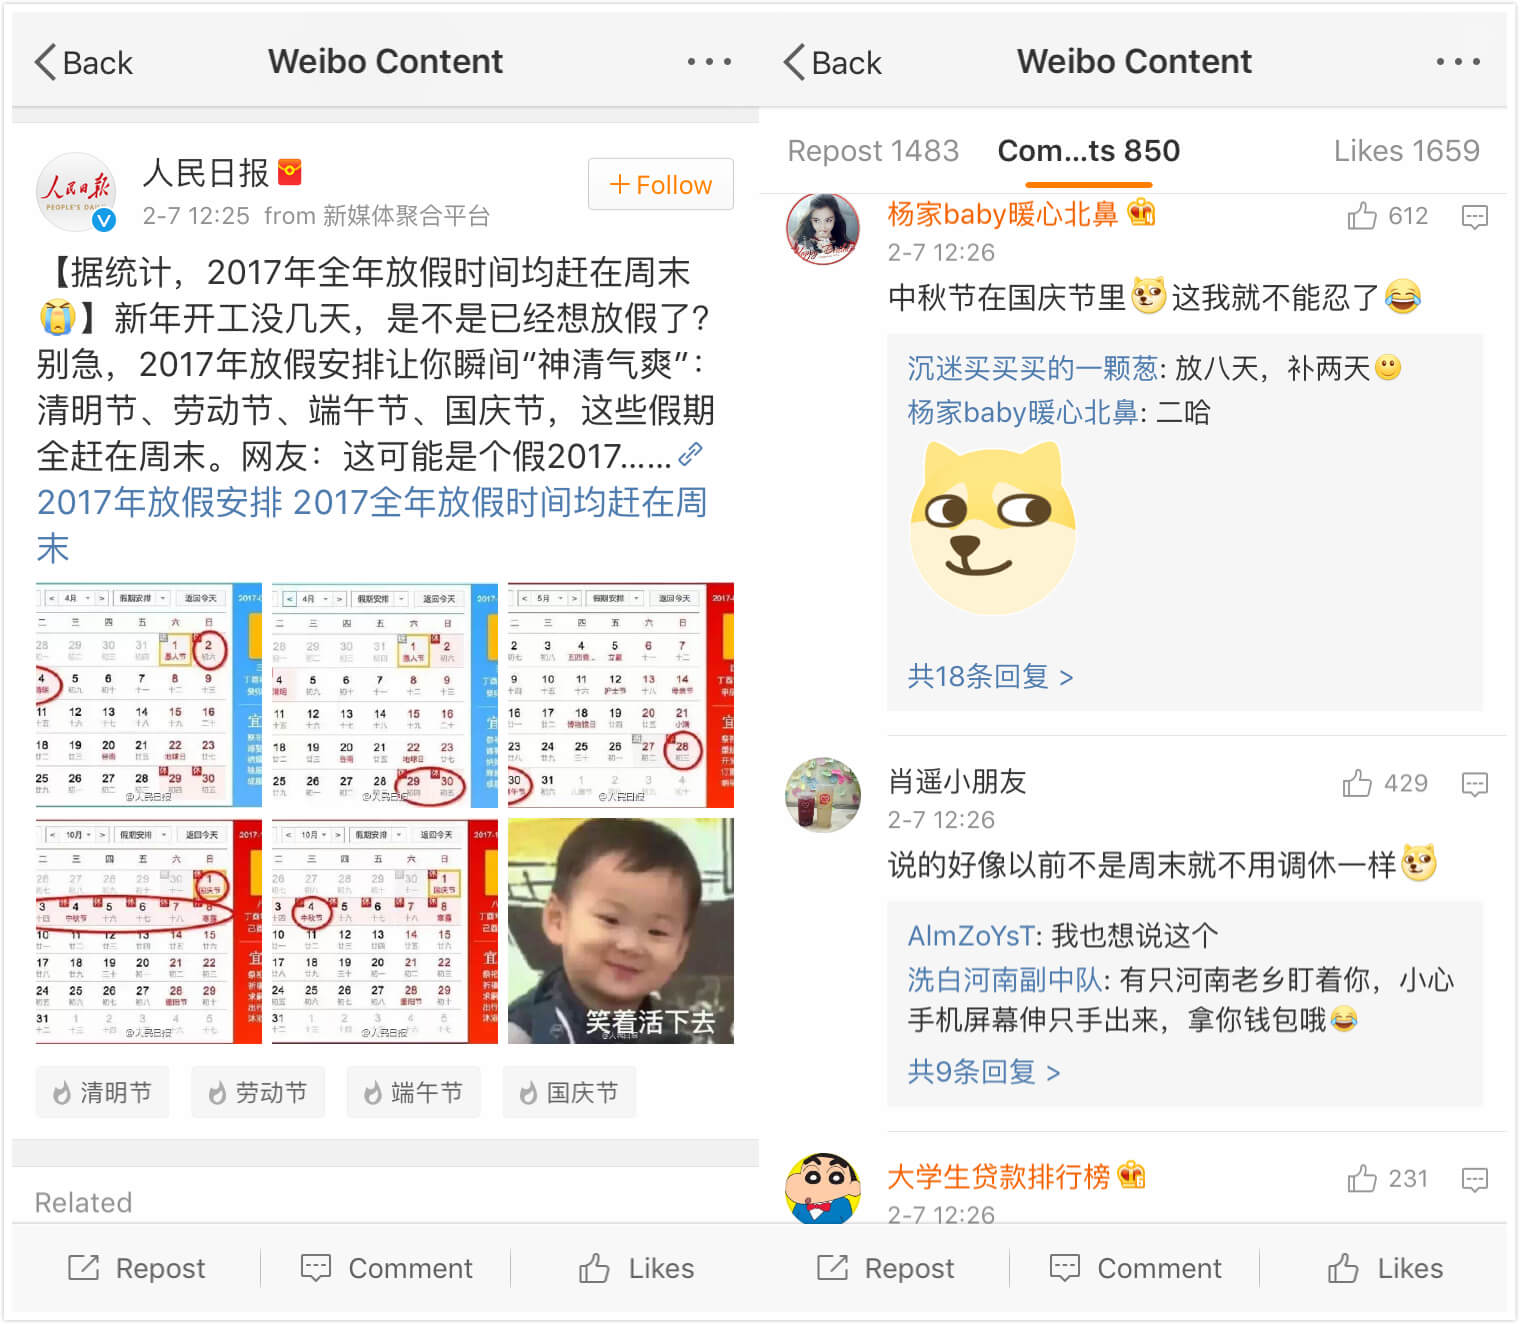 communication difference in wechat and weibo